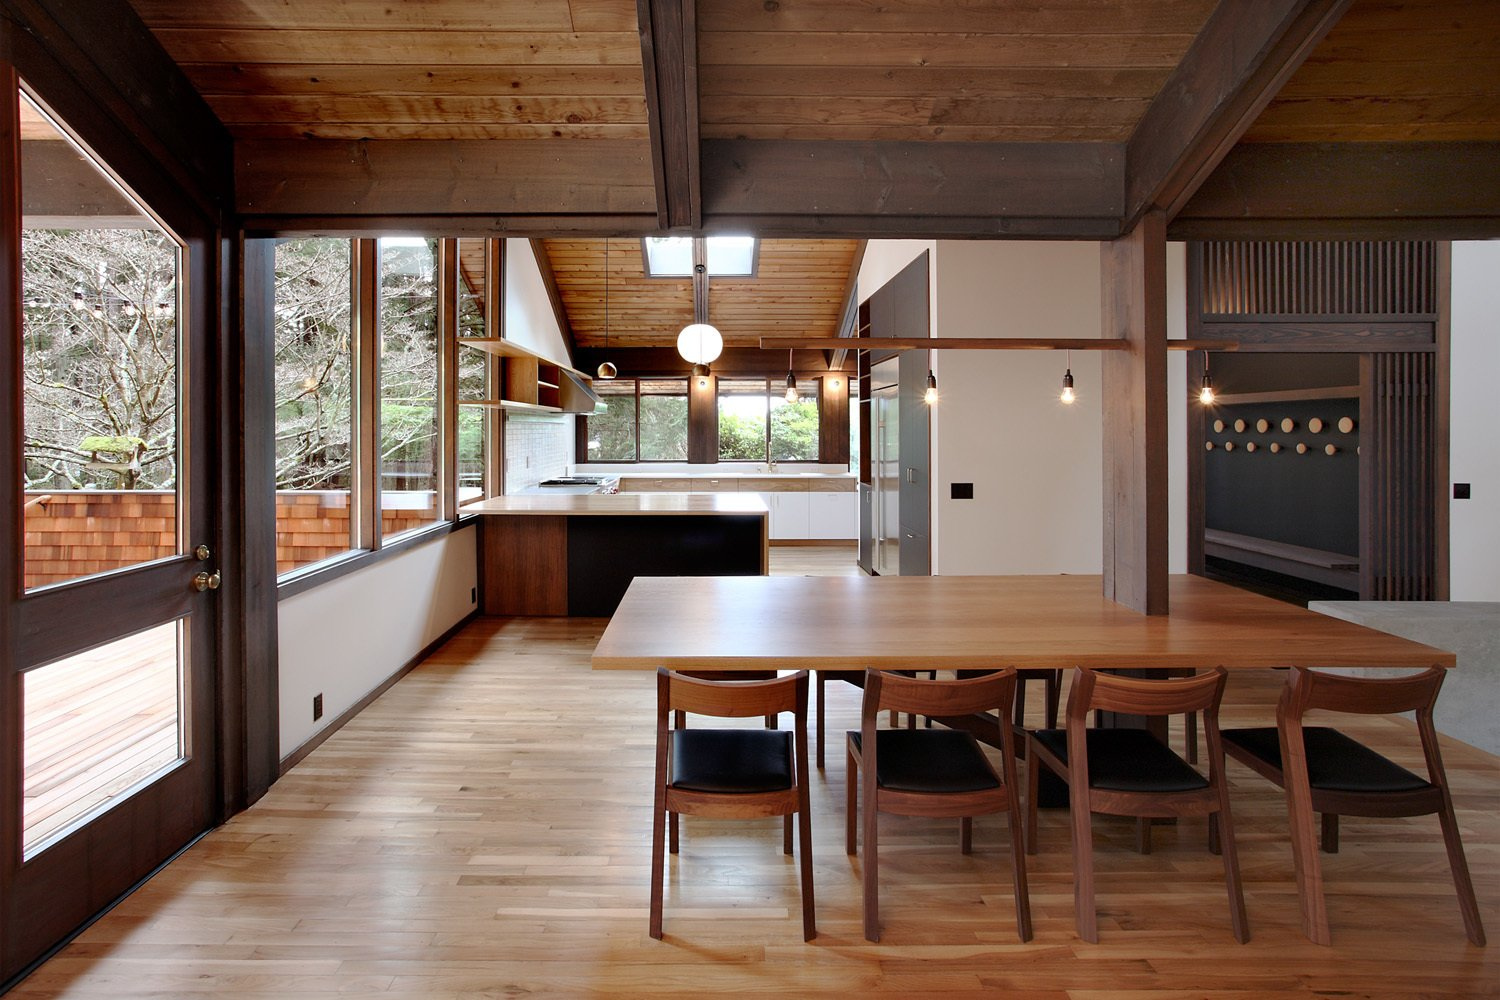 """The light fixtures, a string of dangling lights seen above the dining table, emulate what SHED Architects principal Thomas Schaer calls Zema's """"builderly"""" style: straightforward and unpretentious. The wooden screens, seen top right, are all-new to the house but follow Zema's Japanese-inspired style.  47+ Midcentury Modern Homes Across America by Luke Hopping from House of the Week: Midcentury Modern Reboot in Washington"""